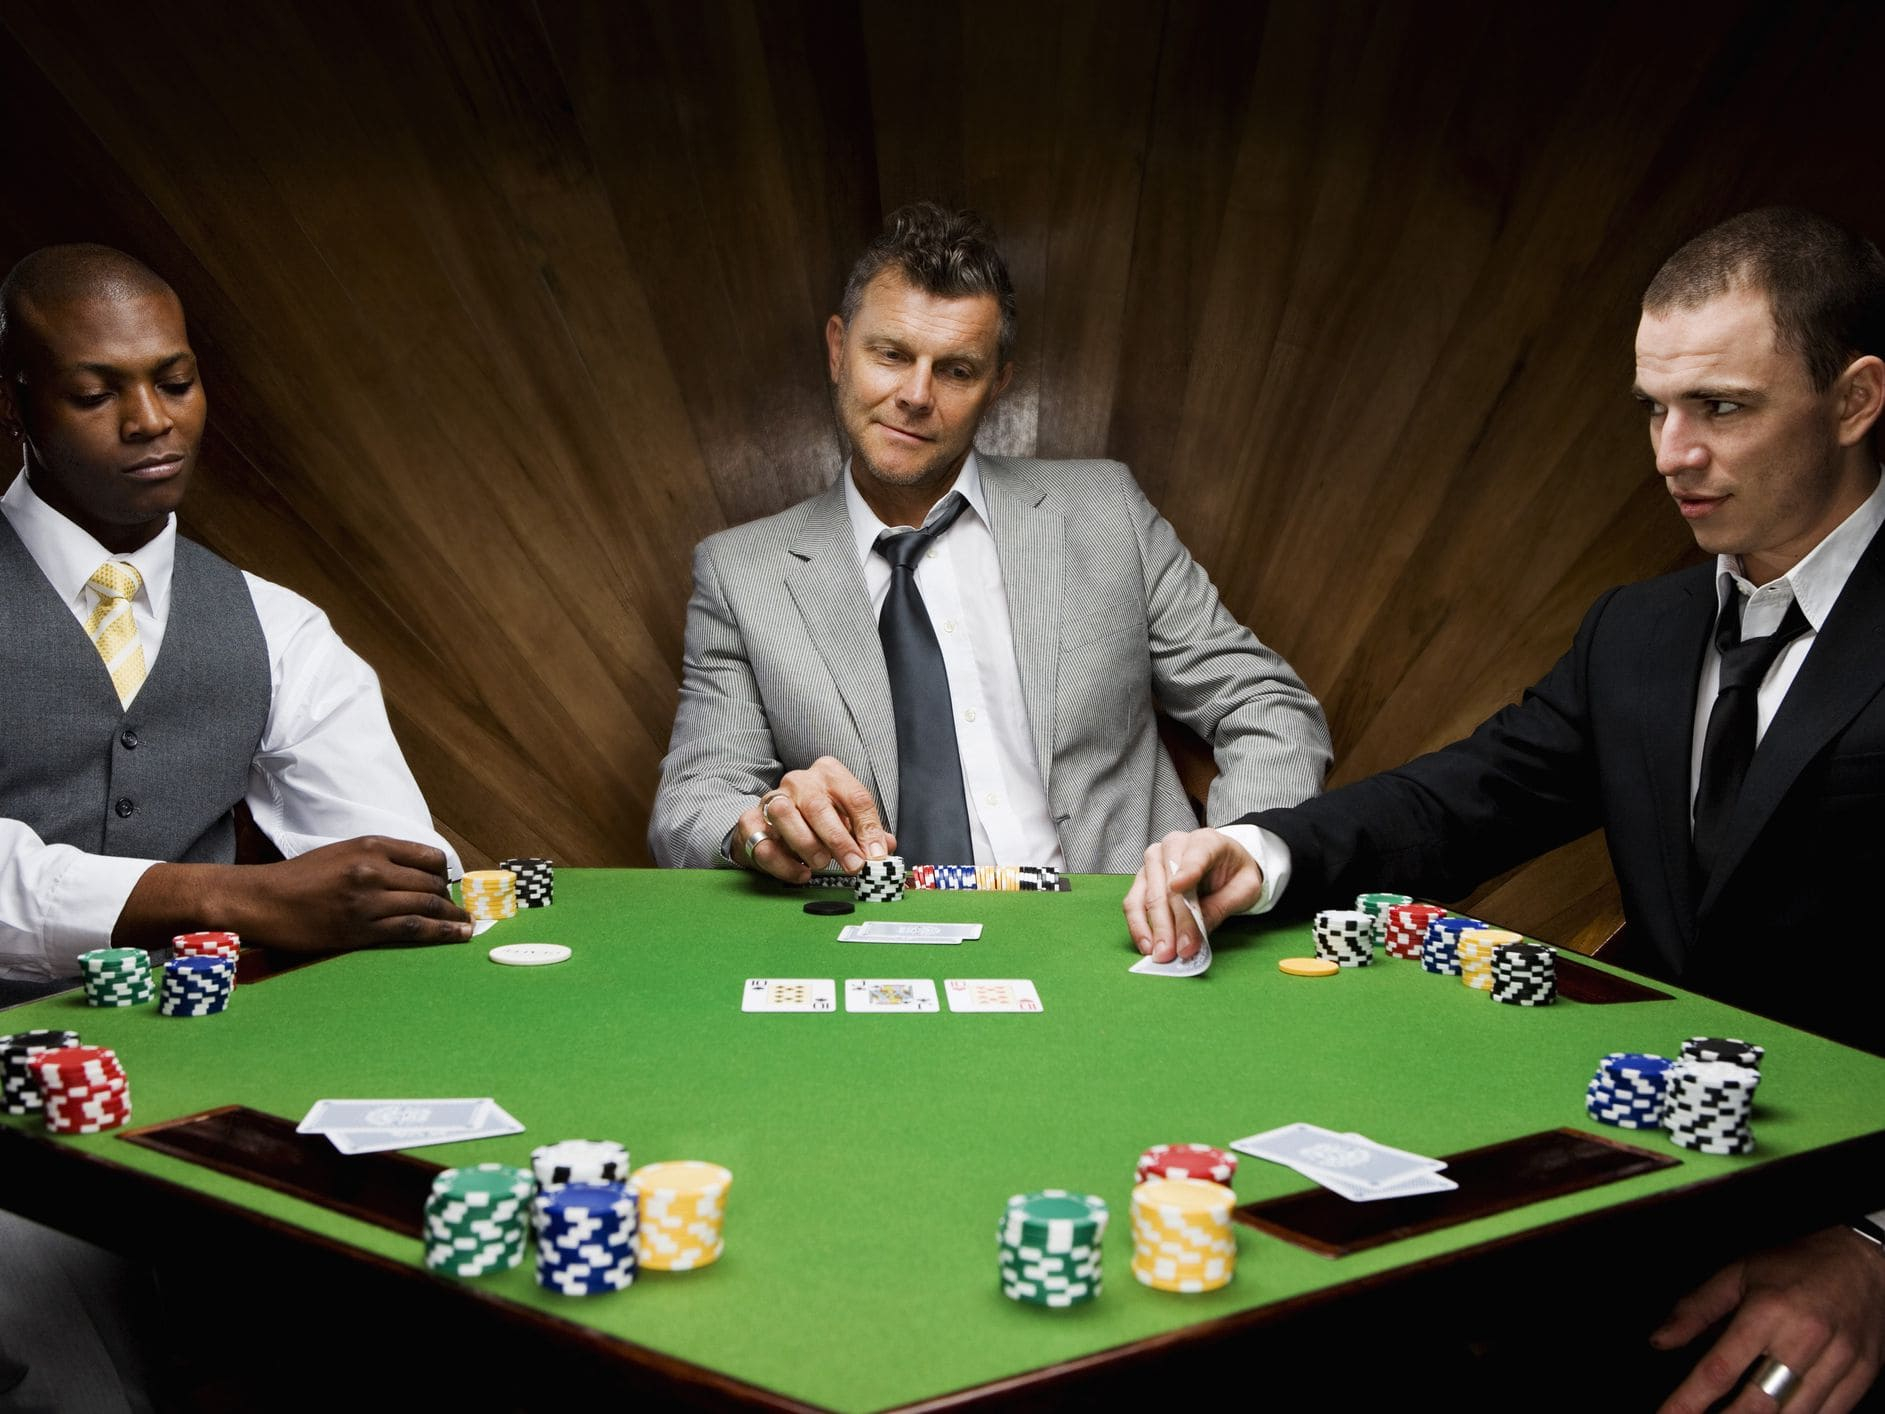 How to play poker to keep winning with small capital